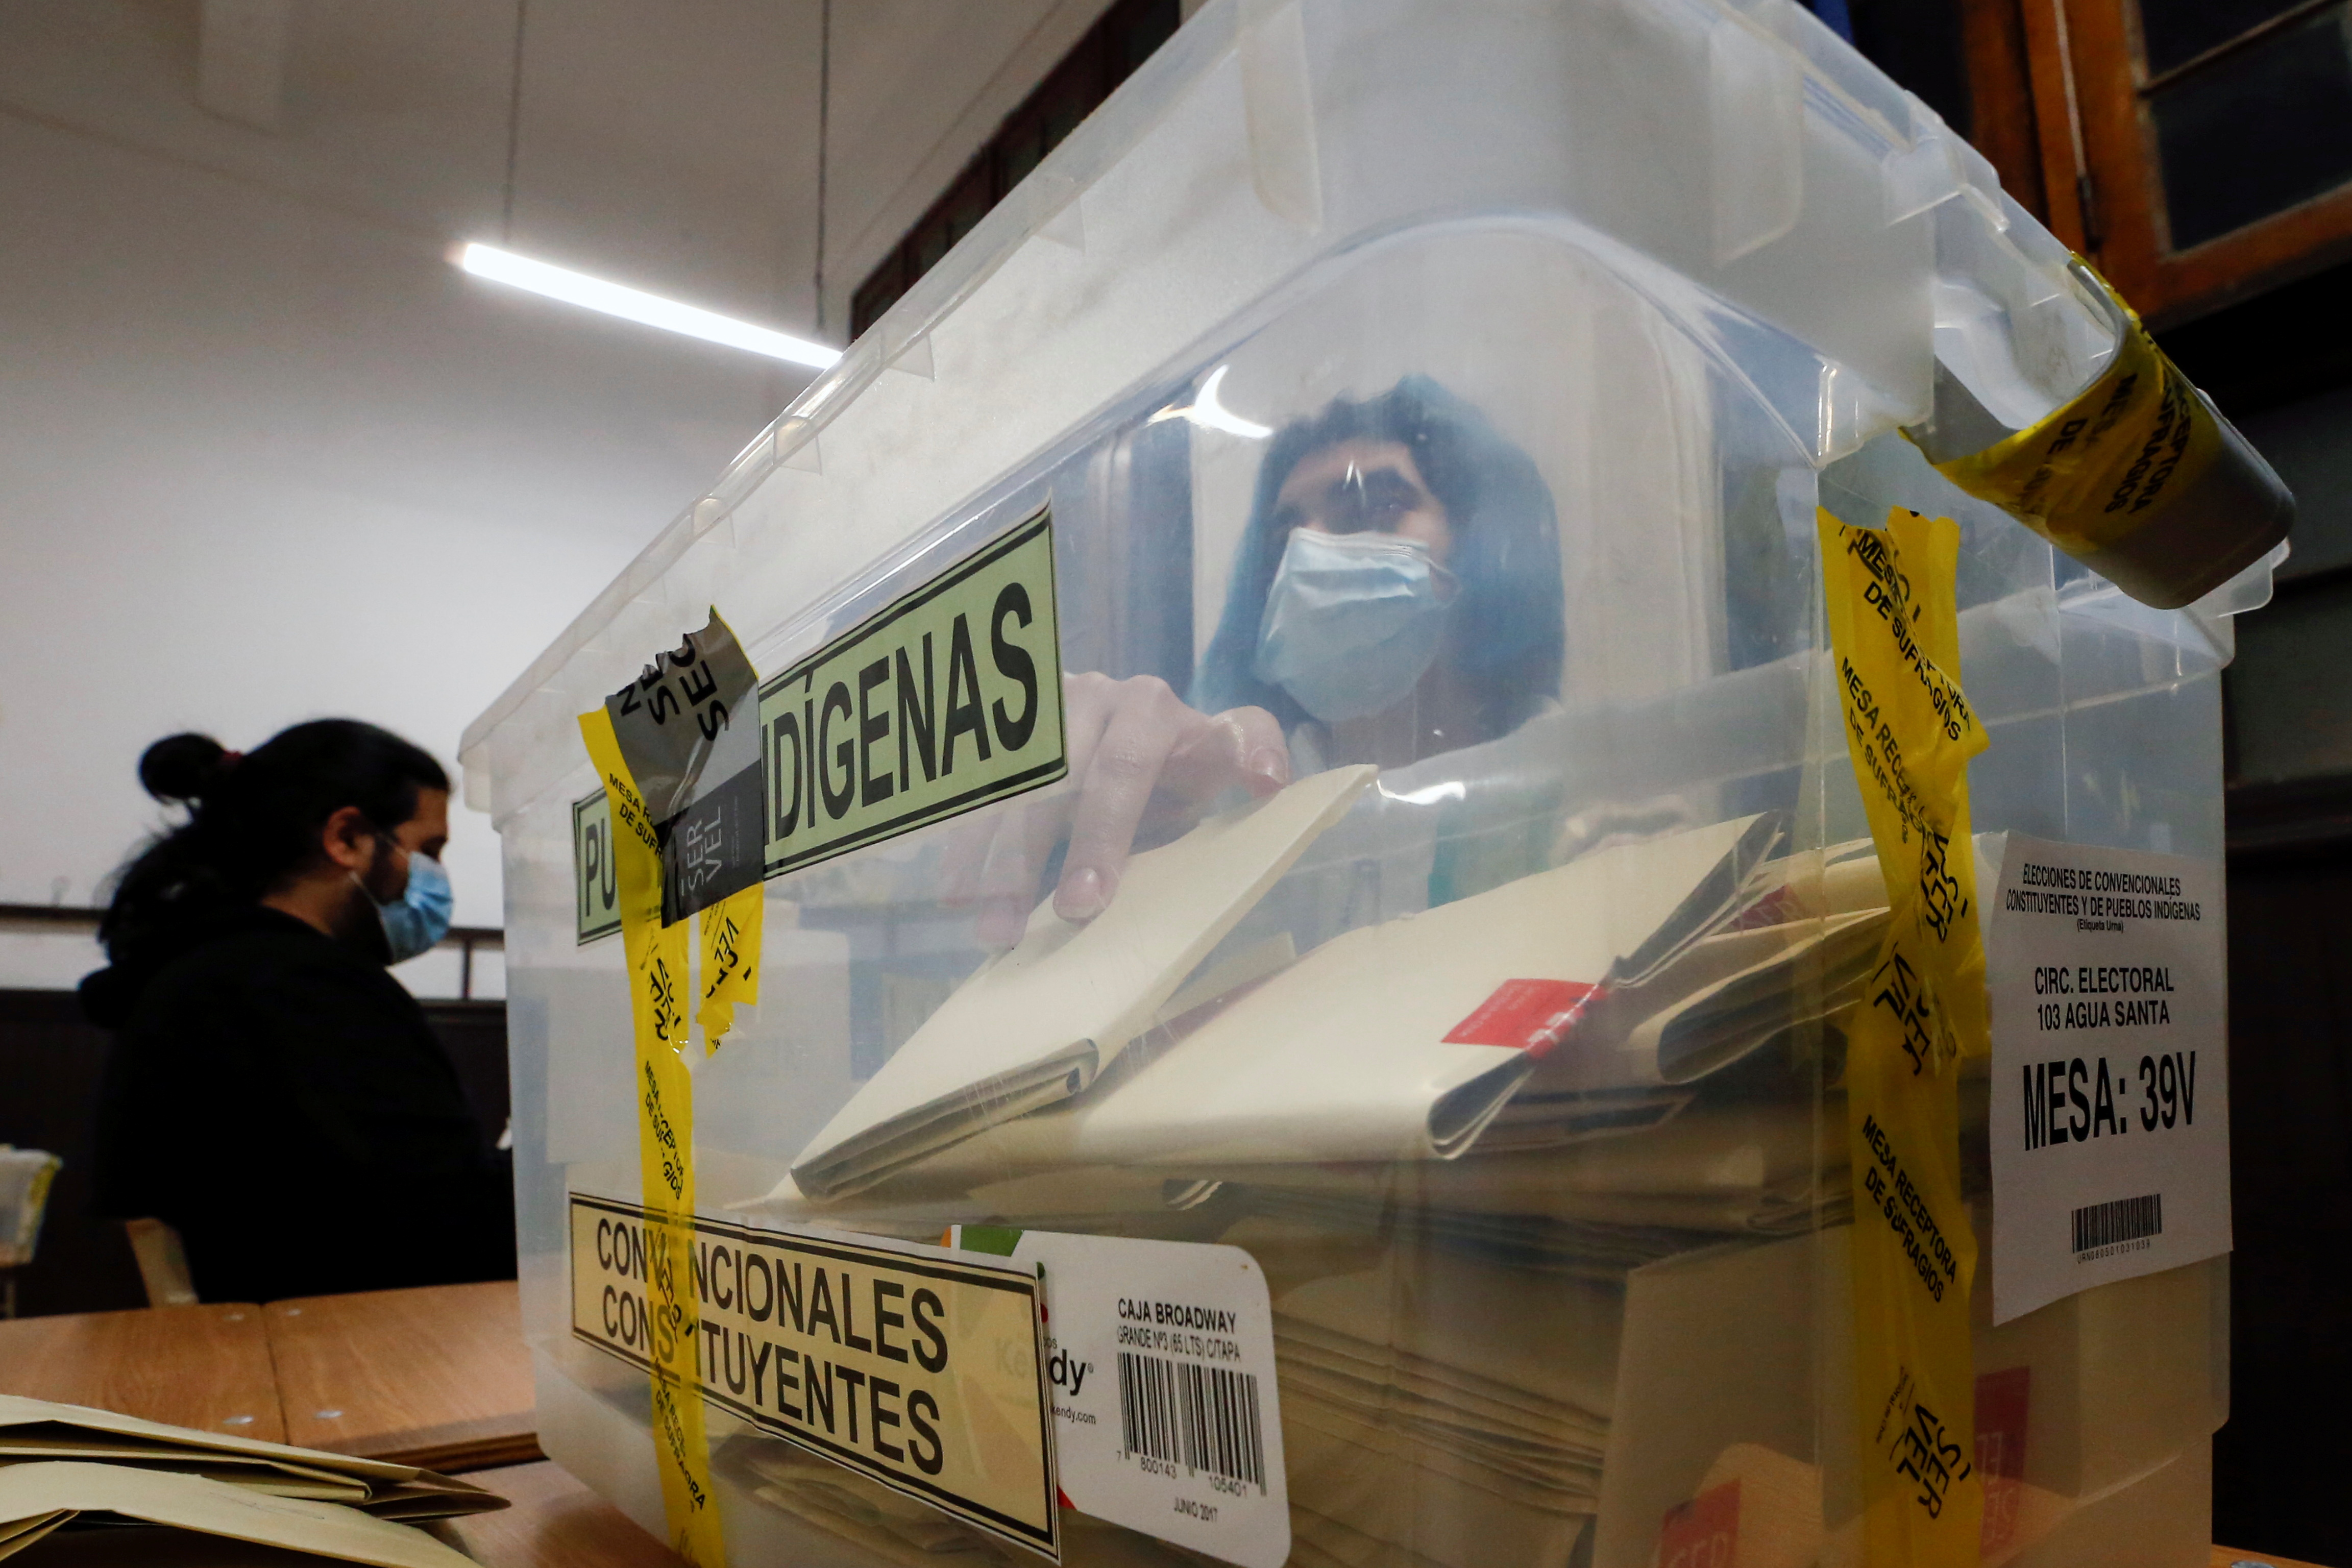 A poll worker wearing protective mask counts the votes in a ballot box after polls closed during the elections for governors, mayors, councillors and constitutional assembly members to draft a new constitution to replace Chile's charter, in Valparaiso, Chile, May 16, 2021. REUTERS/Rodrigo Garrido